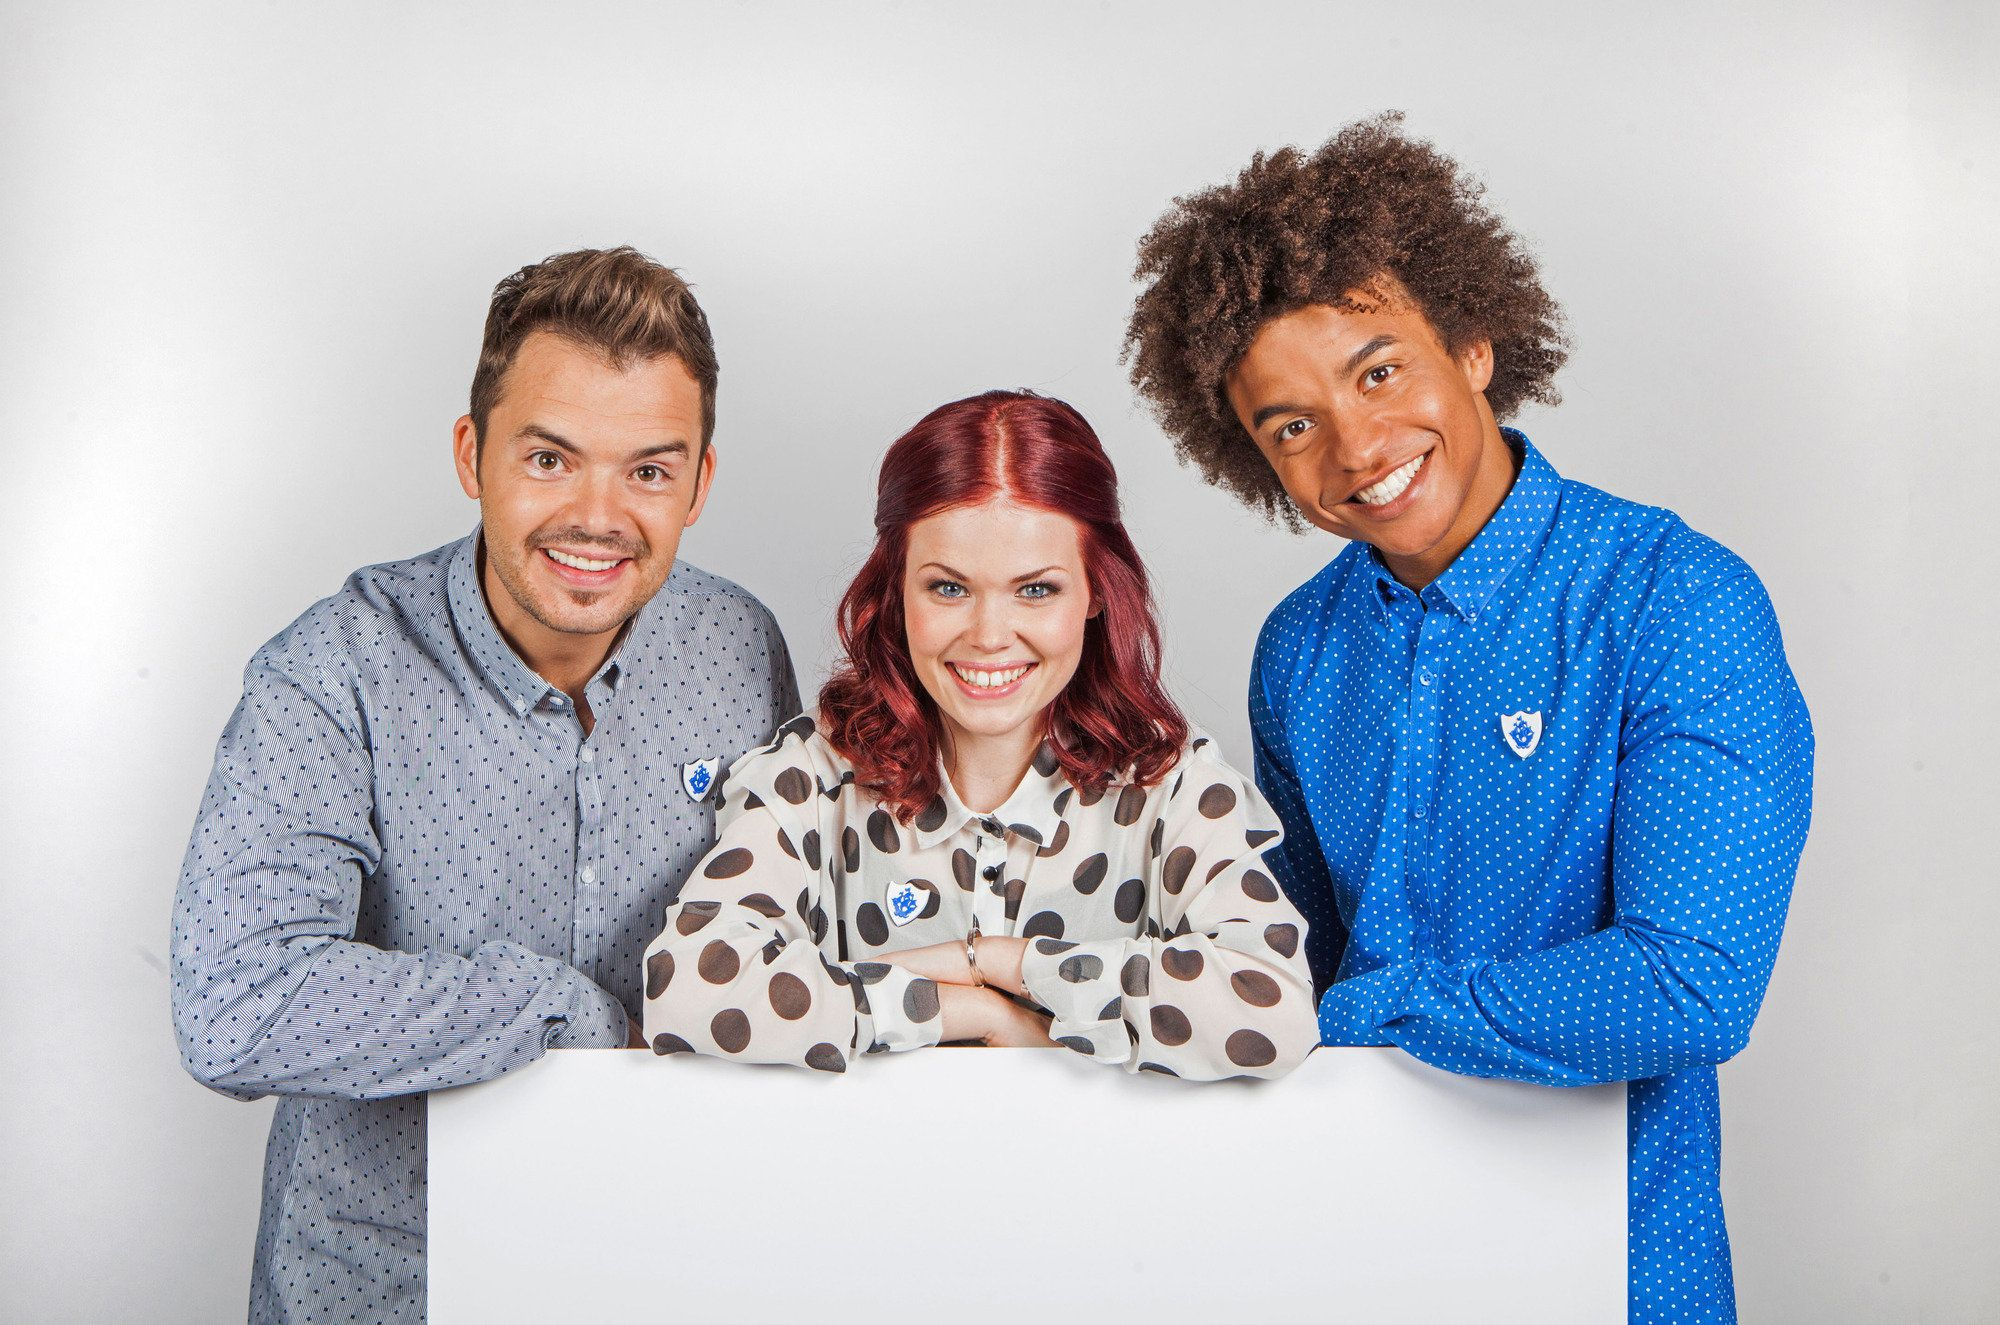 'Blue Peter' Fails To Attract A Single Viewer For Recent